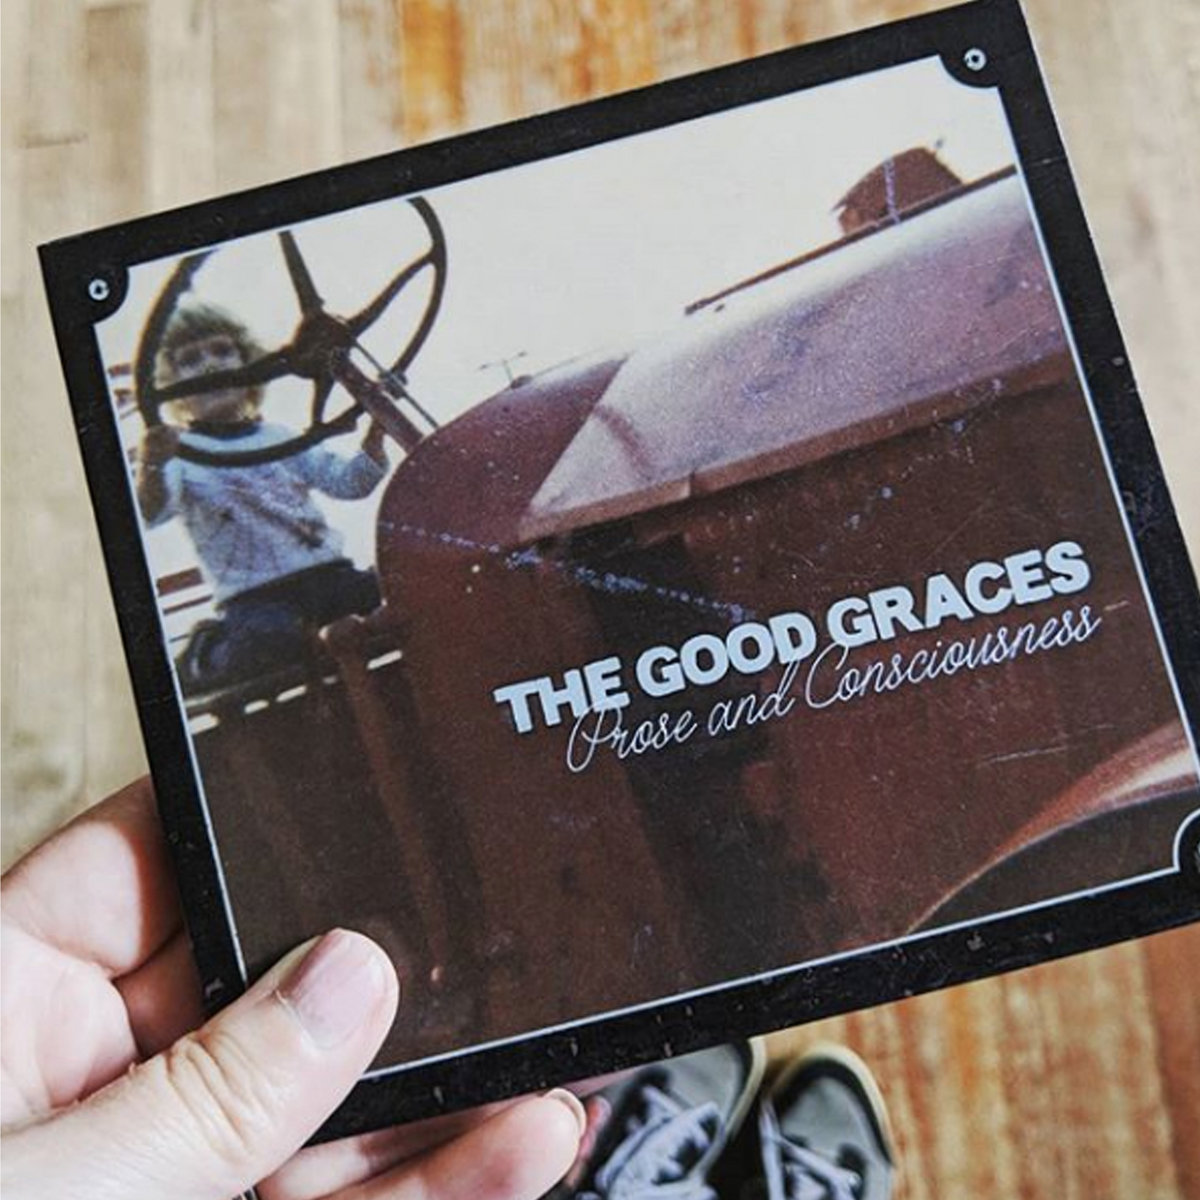 Prose and Consciousness | the Good Graces